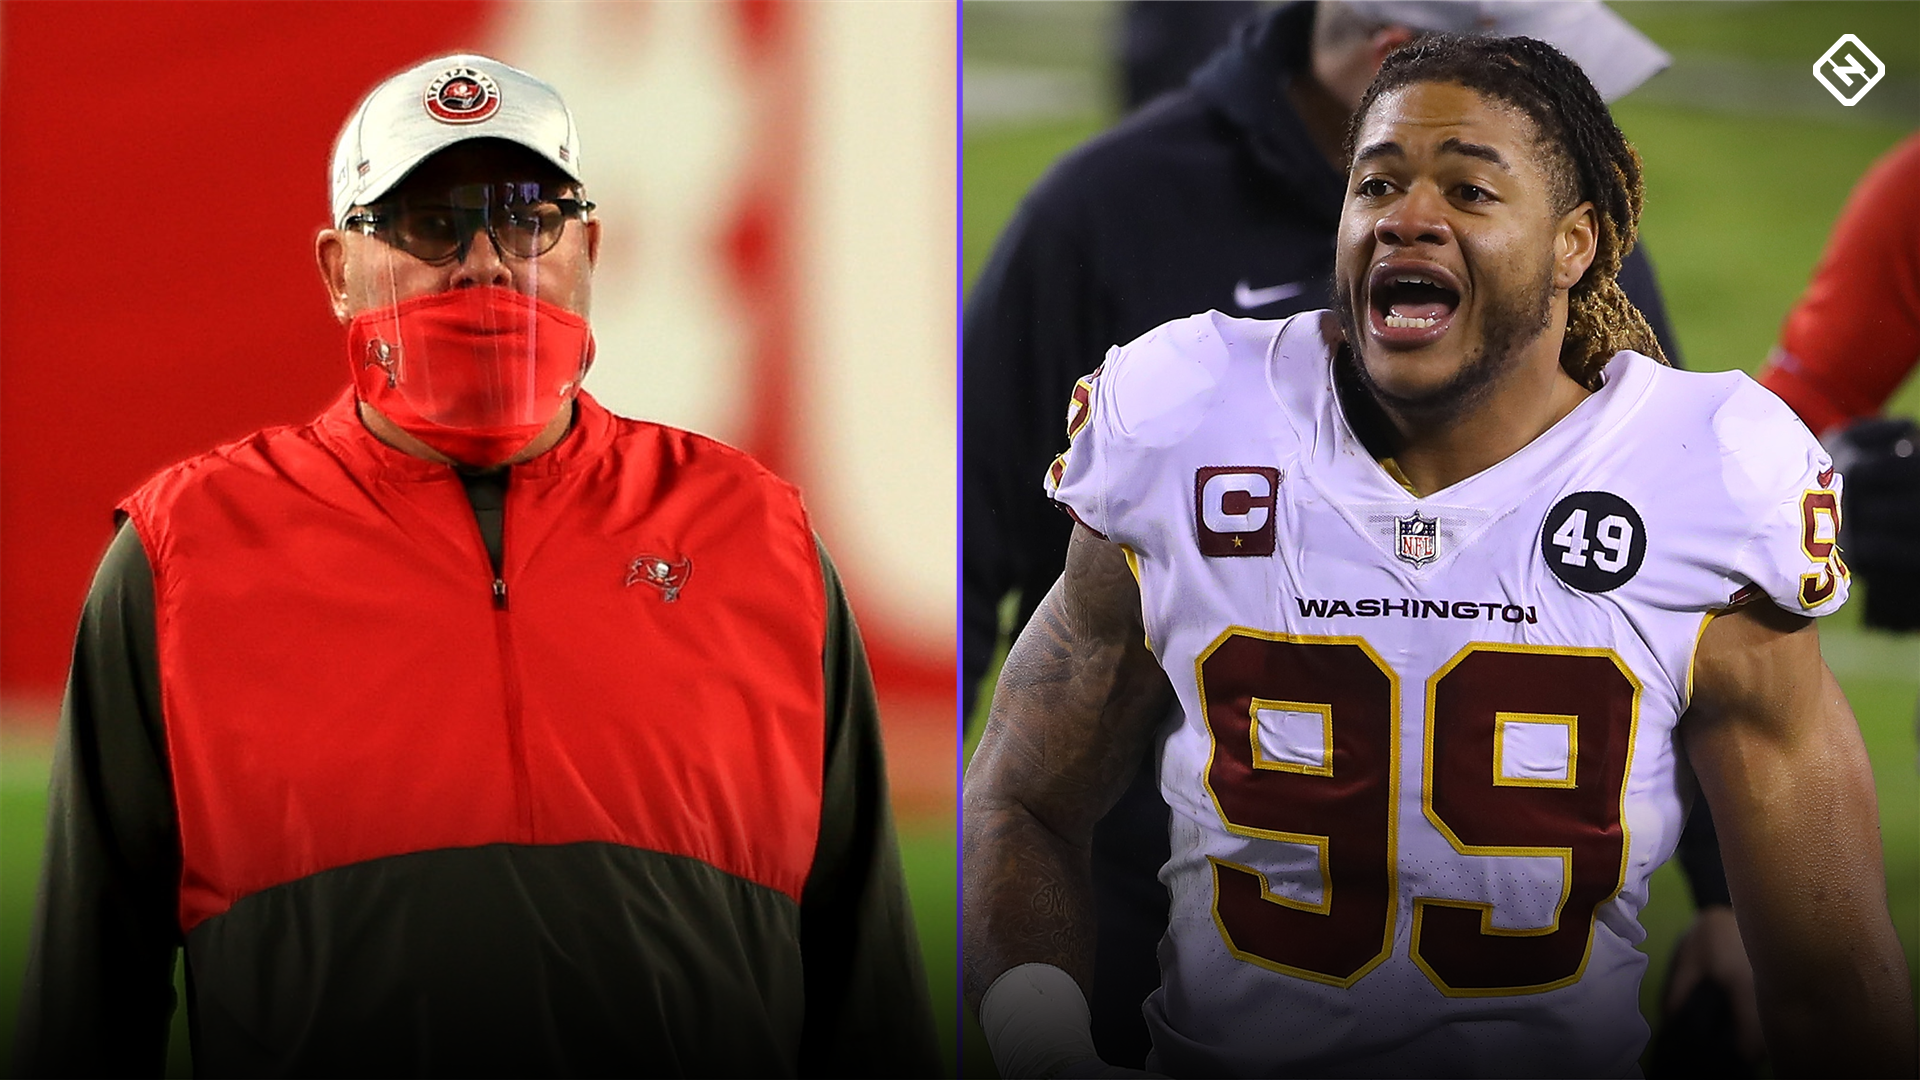 Bruce Arians warns Chase Young for Tom Brady request: 'You better watch what you wish for'